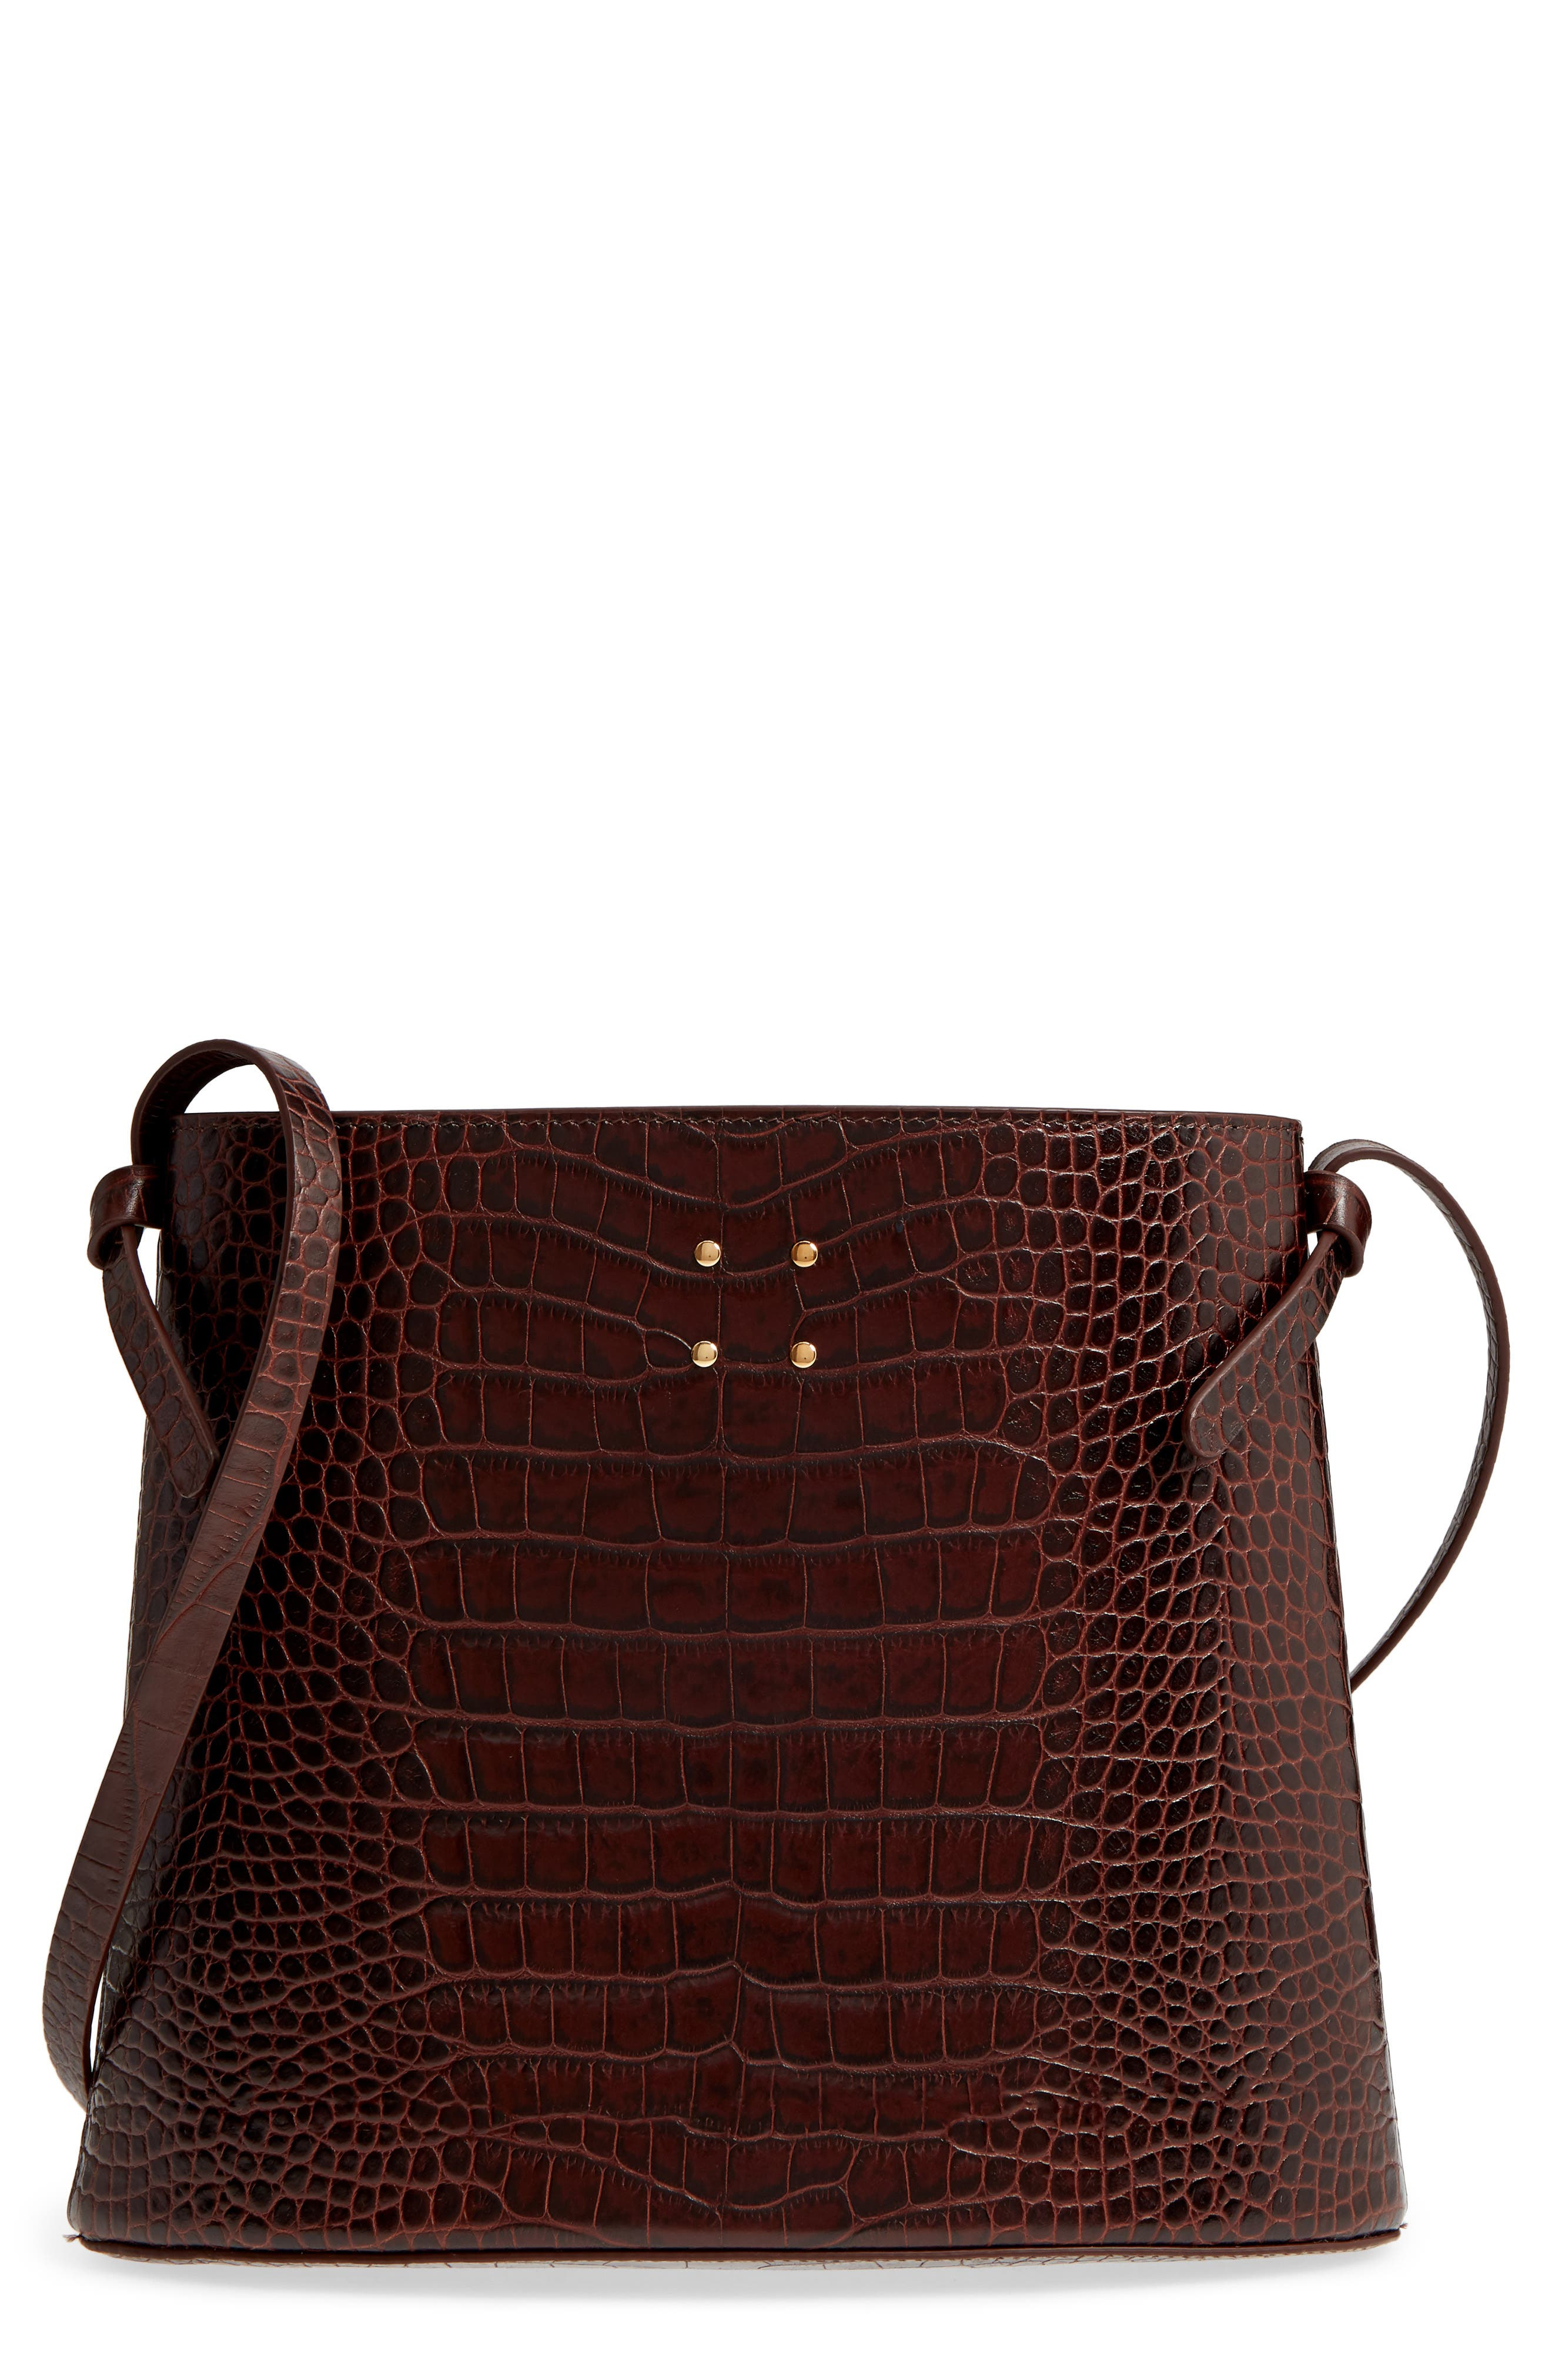 Sybil Croc Embossed Leather Tote,                         Main,                         color, CHOCOLATE BROWN